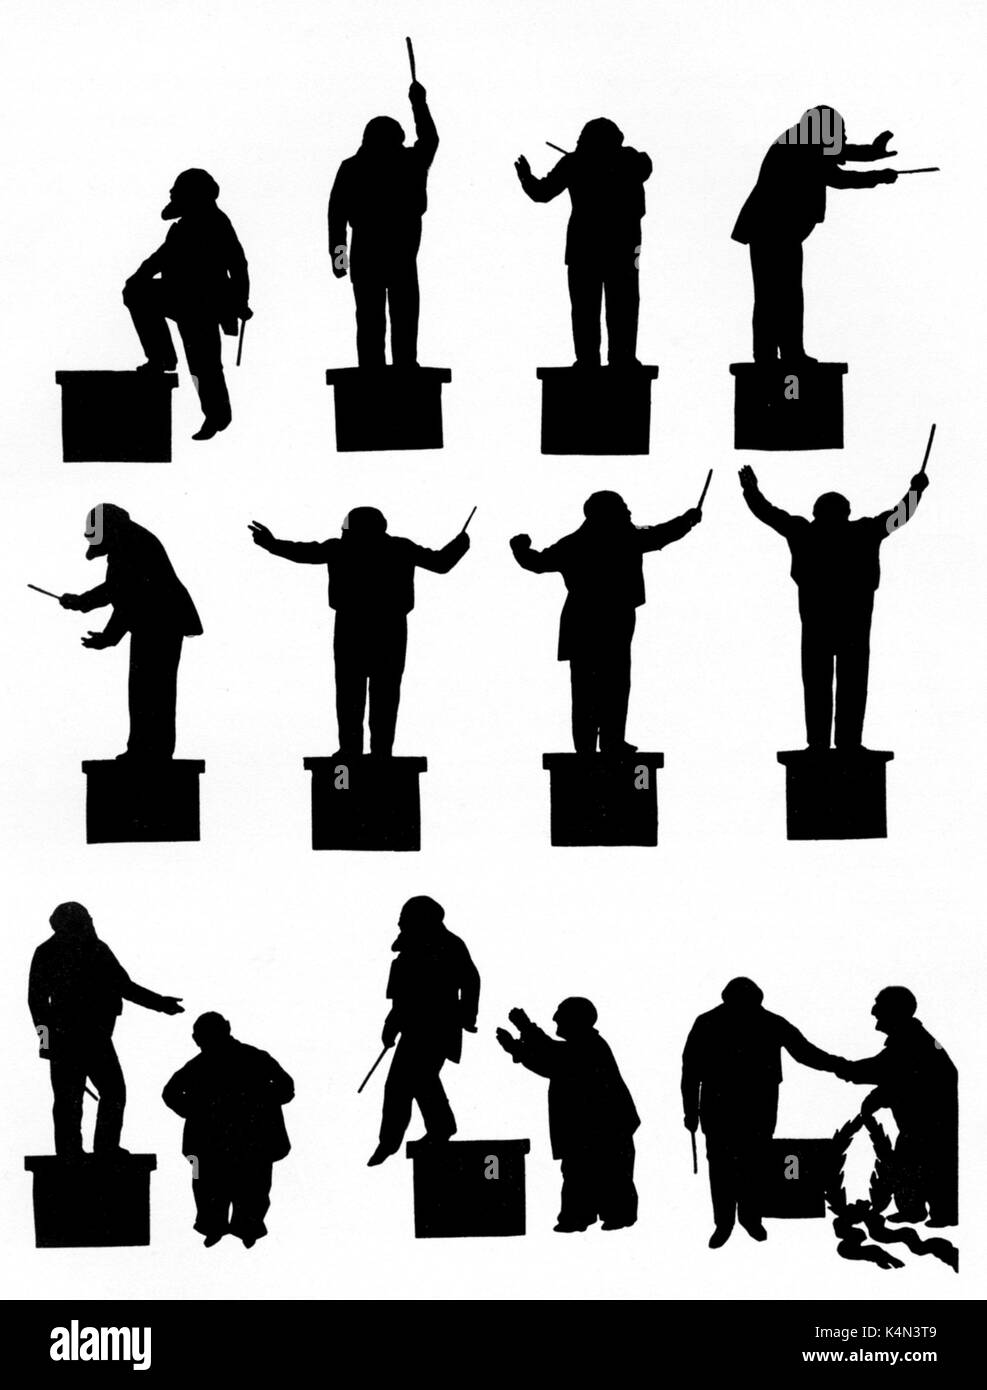 Richter, Hans - silhouette Conducting a Bruckner symphony. By Otto Böhler.  German Conductor, 1843-1916. - Stock Image